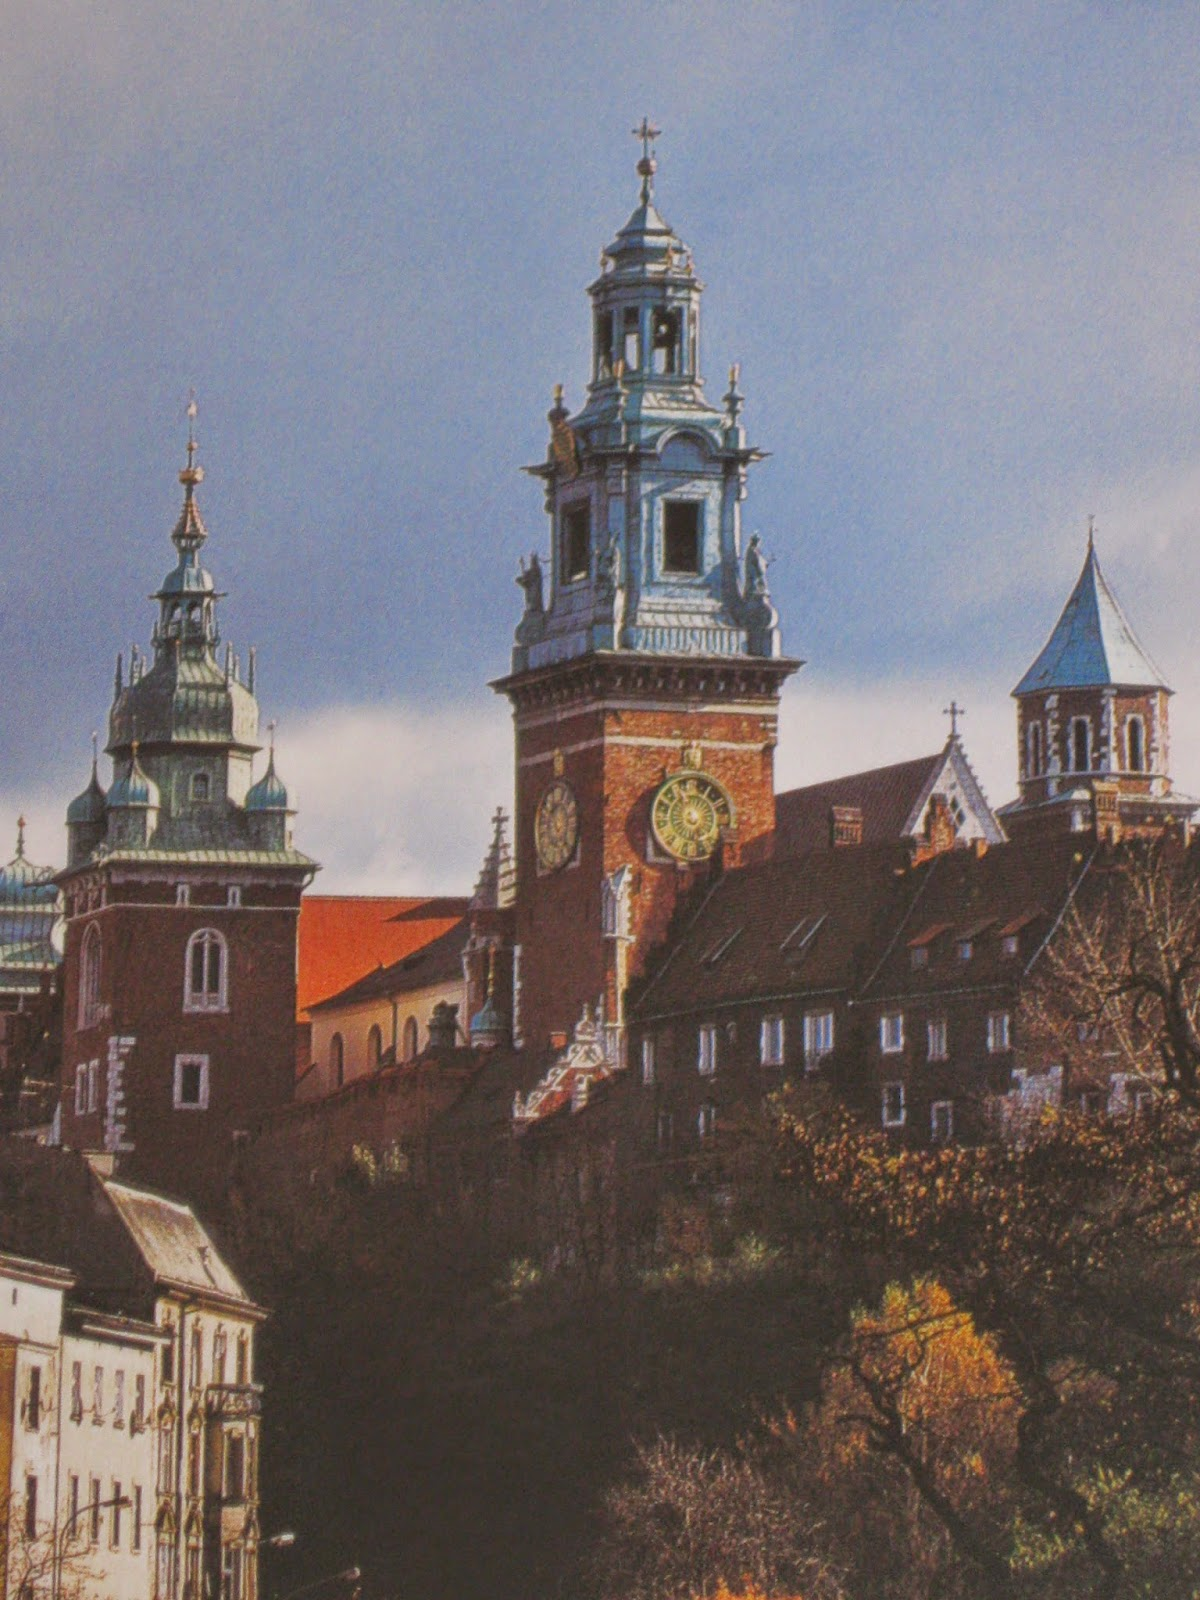 The three towers of Wawel Cathedral, Krakow